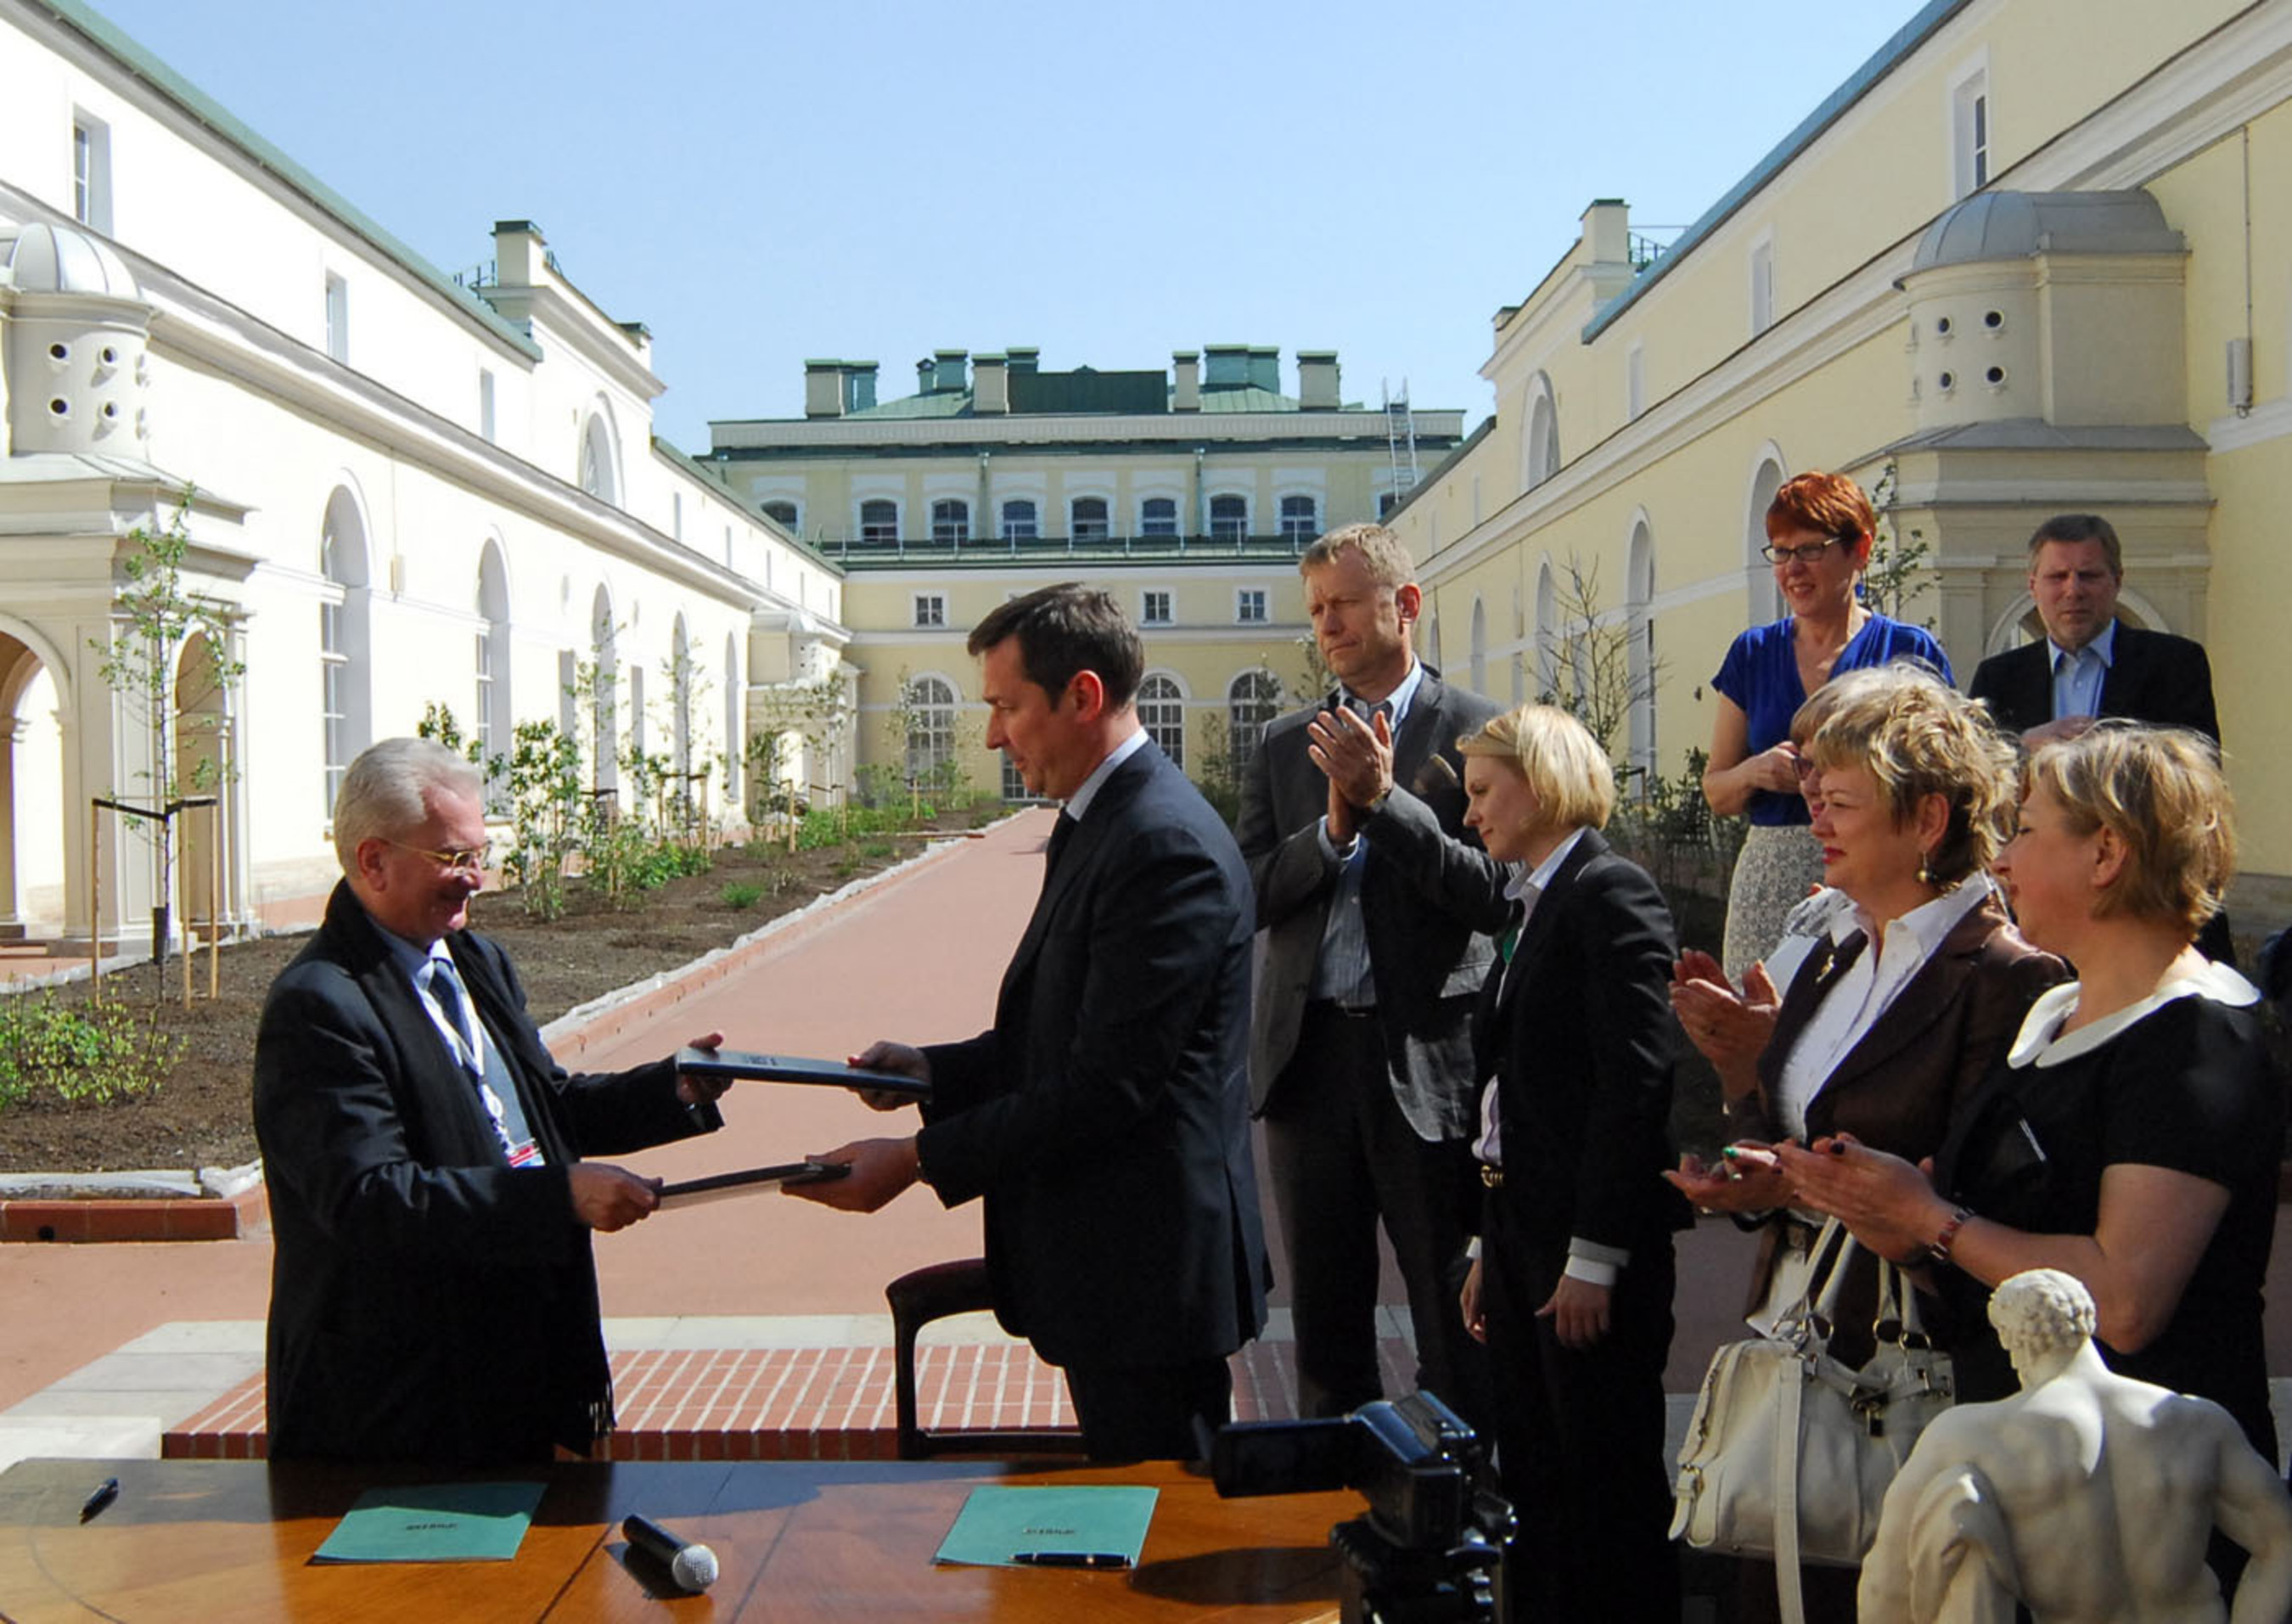 """Mayor Arturas Zuokas of Vilnius, Lithuania (center) and Dr. Mikhail Piotrovsky, Director of the State Hermitage Museum sign an Agreement for Cooperation in St. Petersburg, Russia applauded by Lithuanian Minister of Culture Sarunas Birute and members of the Vilnius City Council in St. Petersburg, Russia. The exhibition """"FLUXUS: Russian Atlases"""" by the founder of the FLUXUS movement, Lithuanisn George Maciunas, will open on September 20th at the Hermitage. It will also showcase visual works by legendary Lithuanian avant garde filmmaker Jonas Mekas from New York. (PRNewsFoto/Jonas Mekas Foundation USA) (PRNewsFoto/JONAS MEKAS FOUNDATION USA)"""